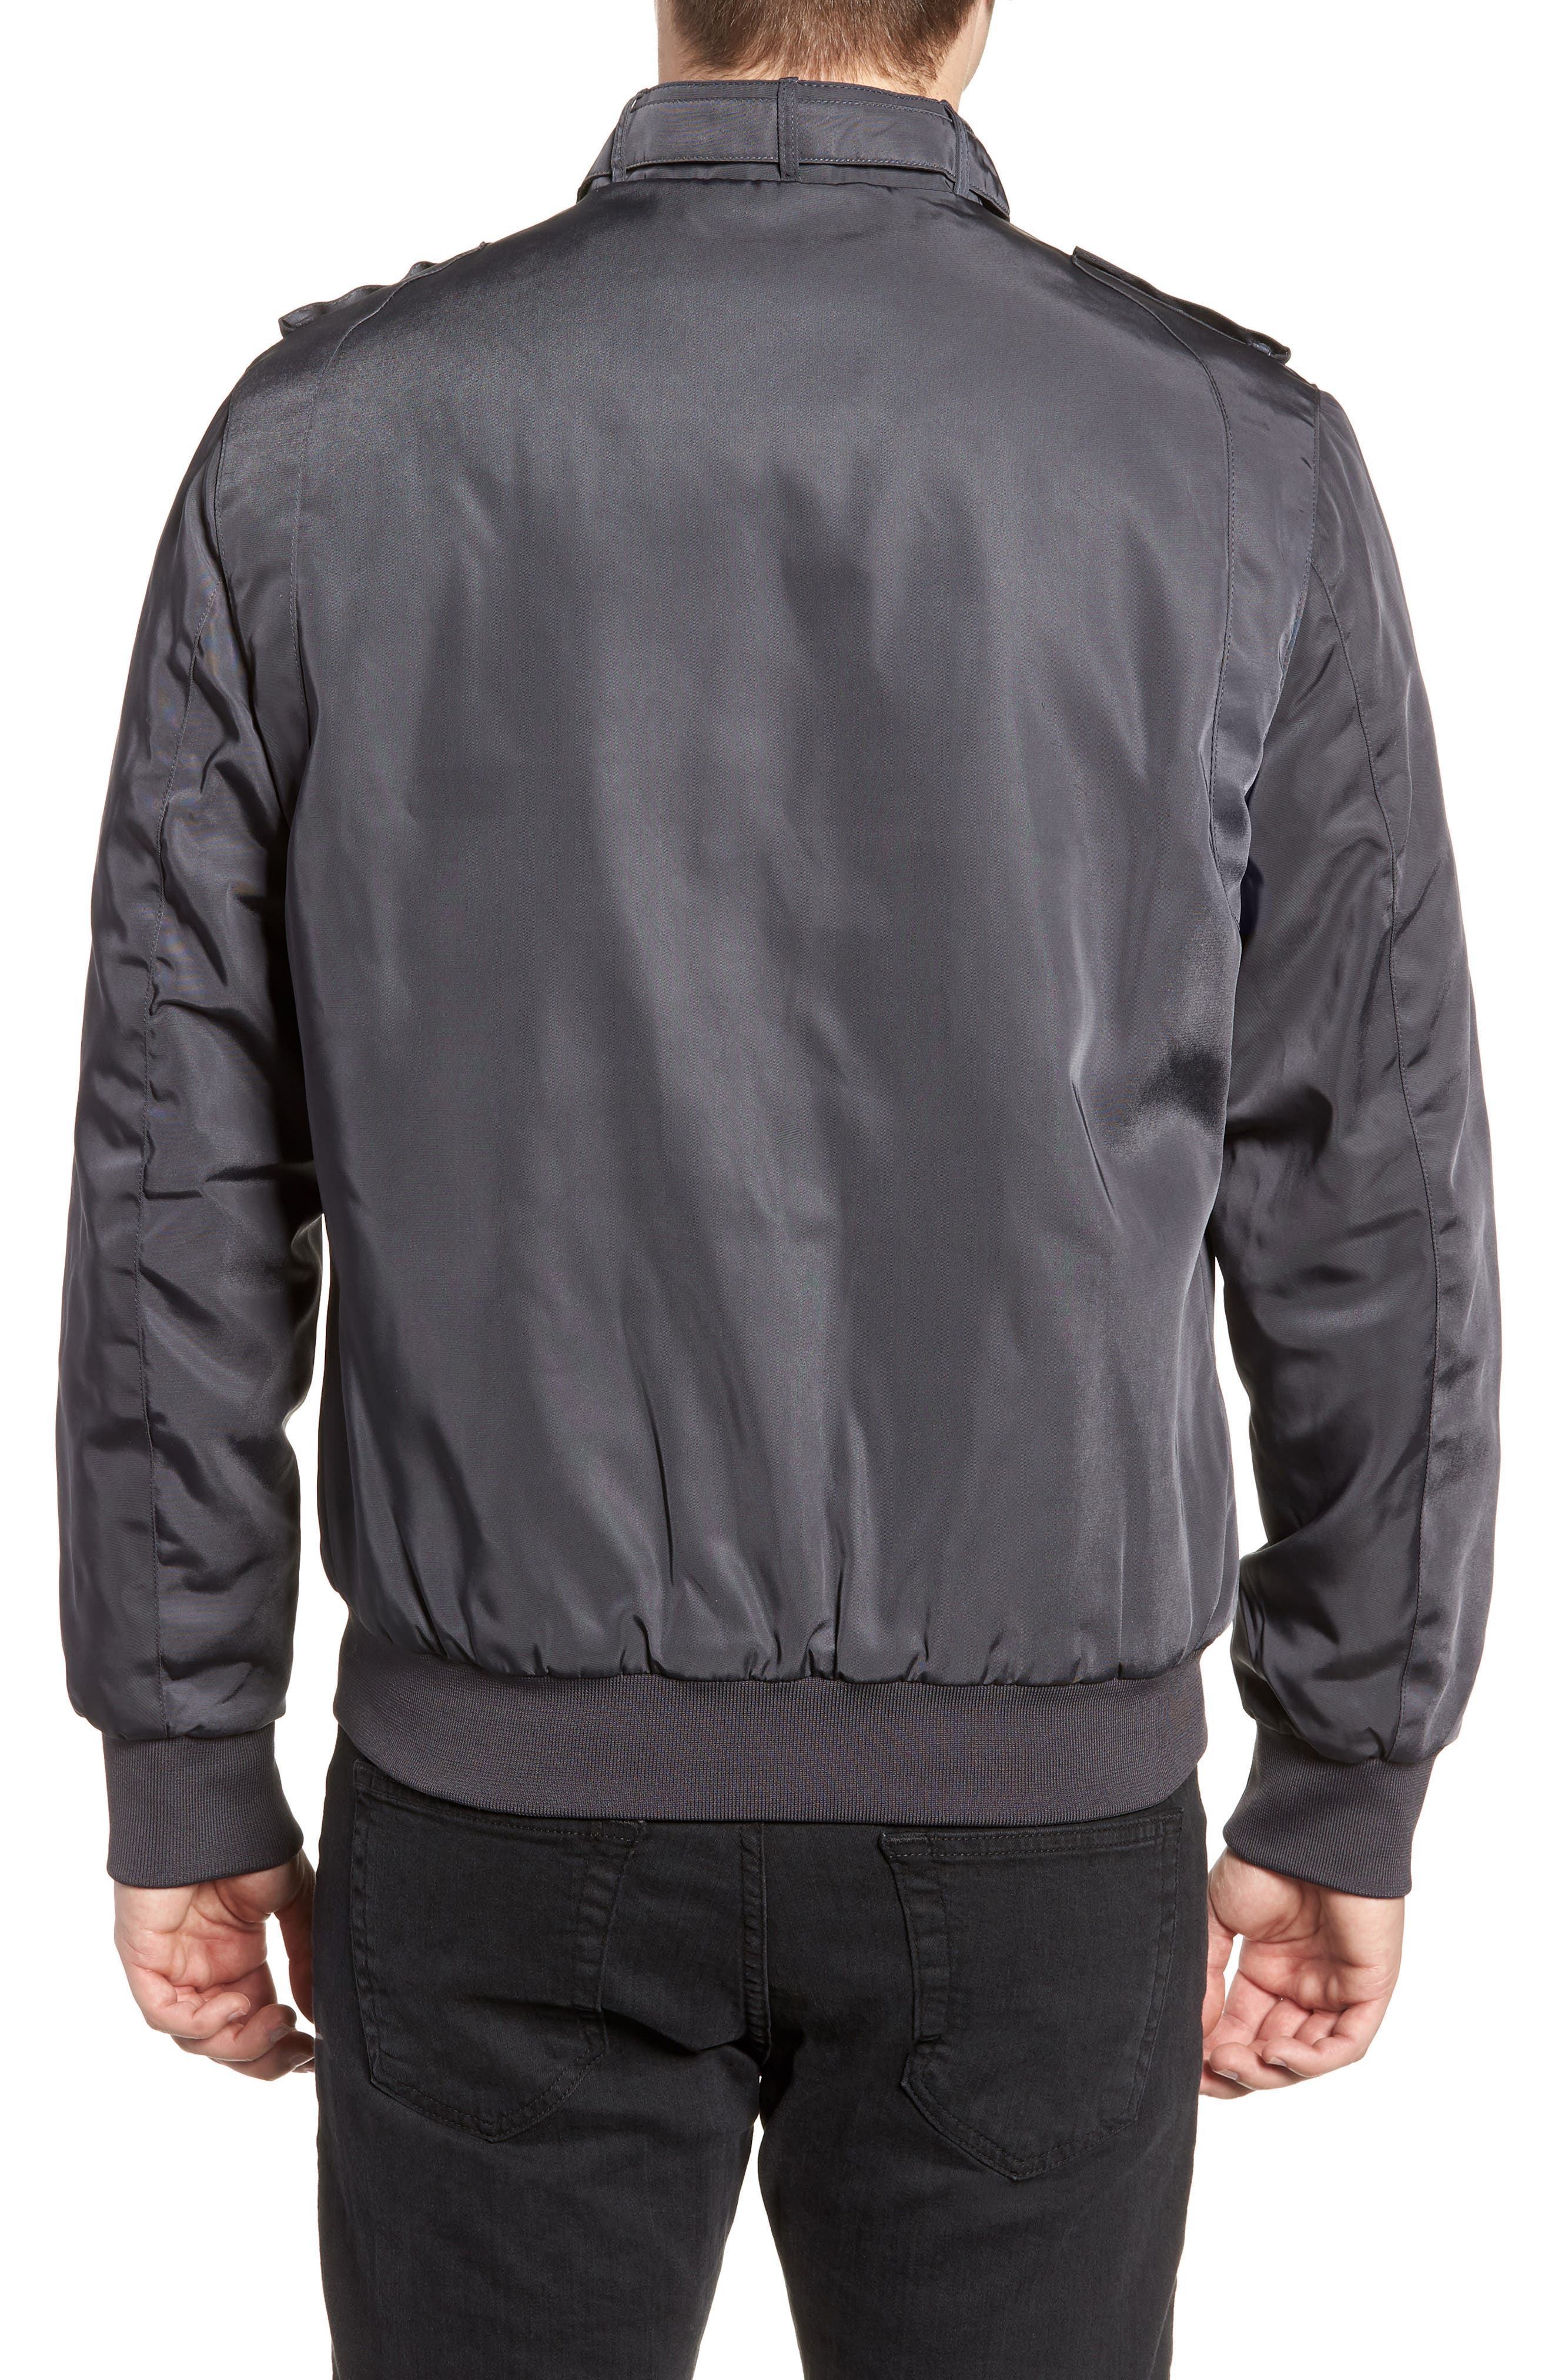 Iconic Racer Jacket,                             Alternate thumbnail 2, color,                             CHARCOAL